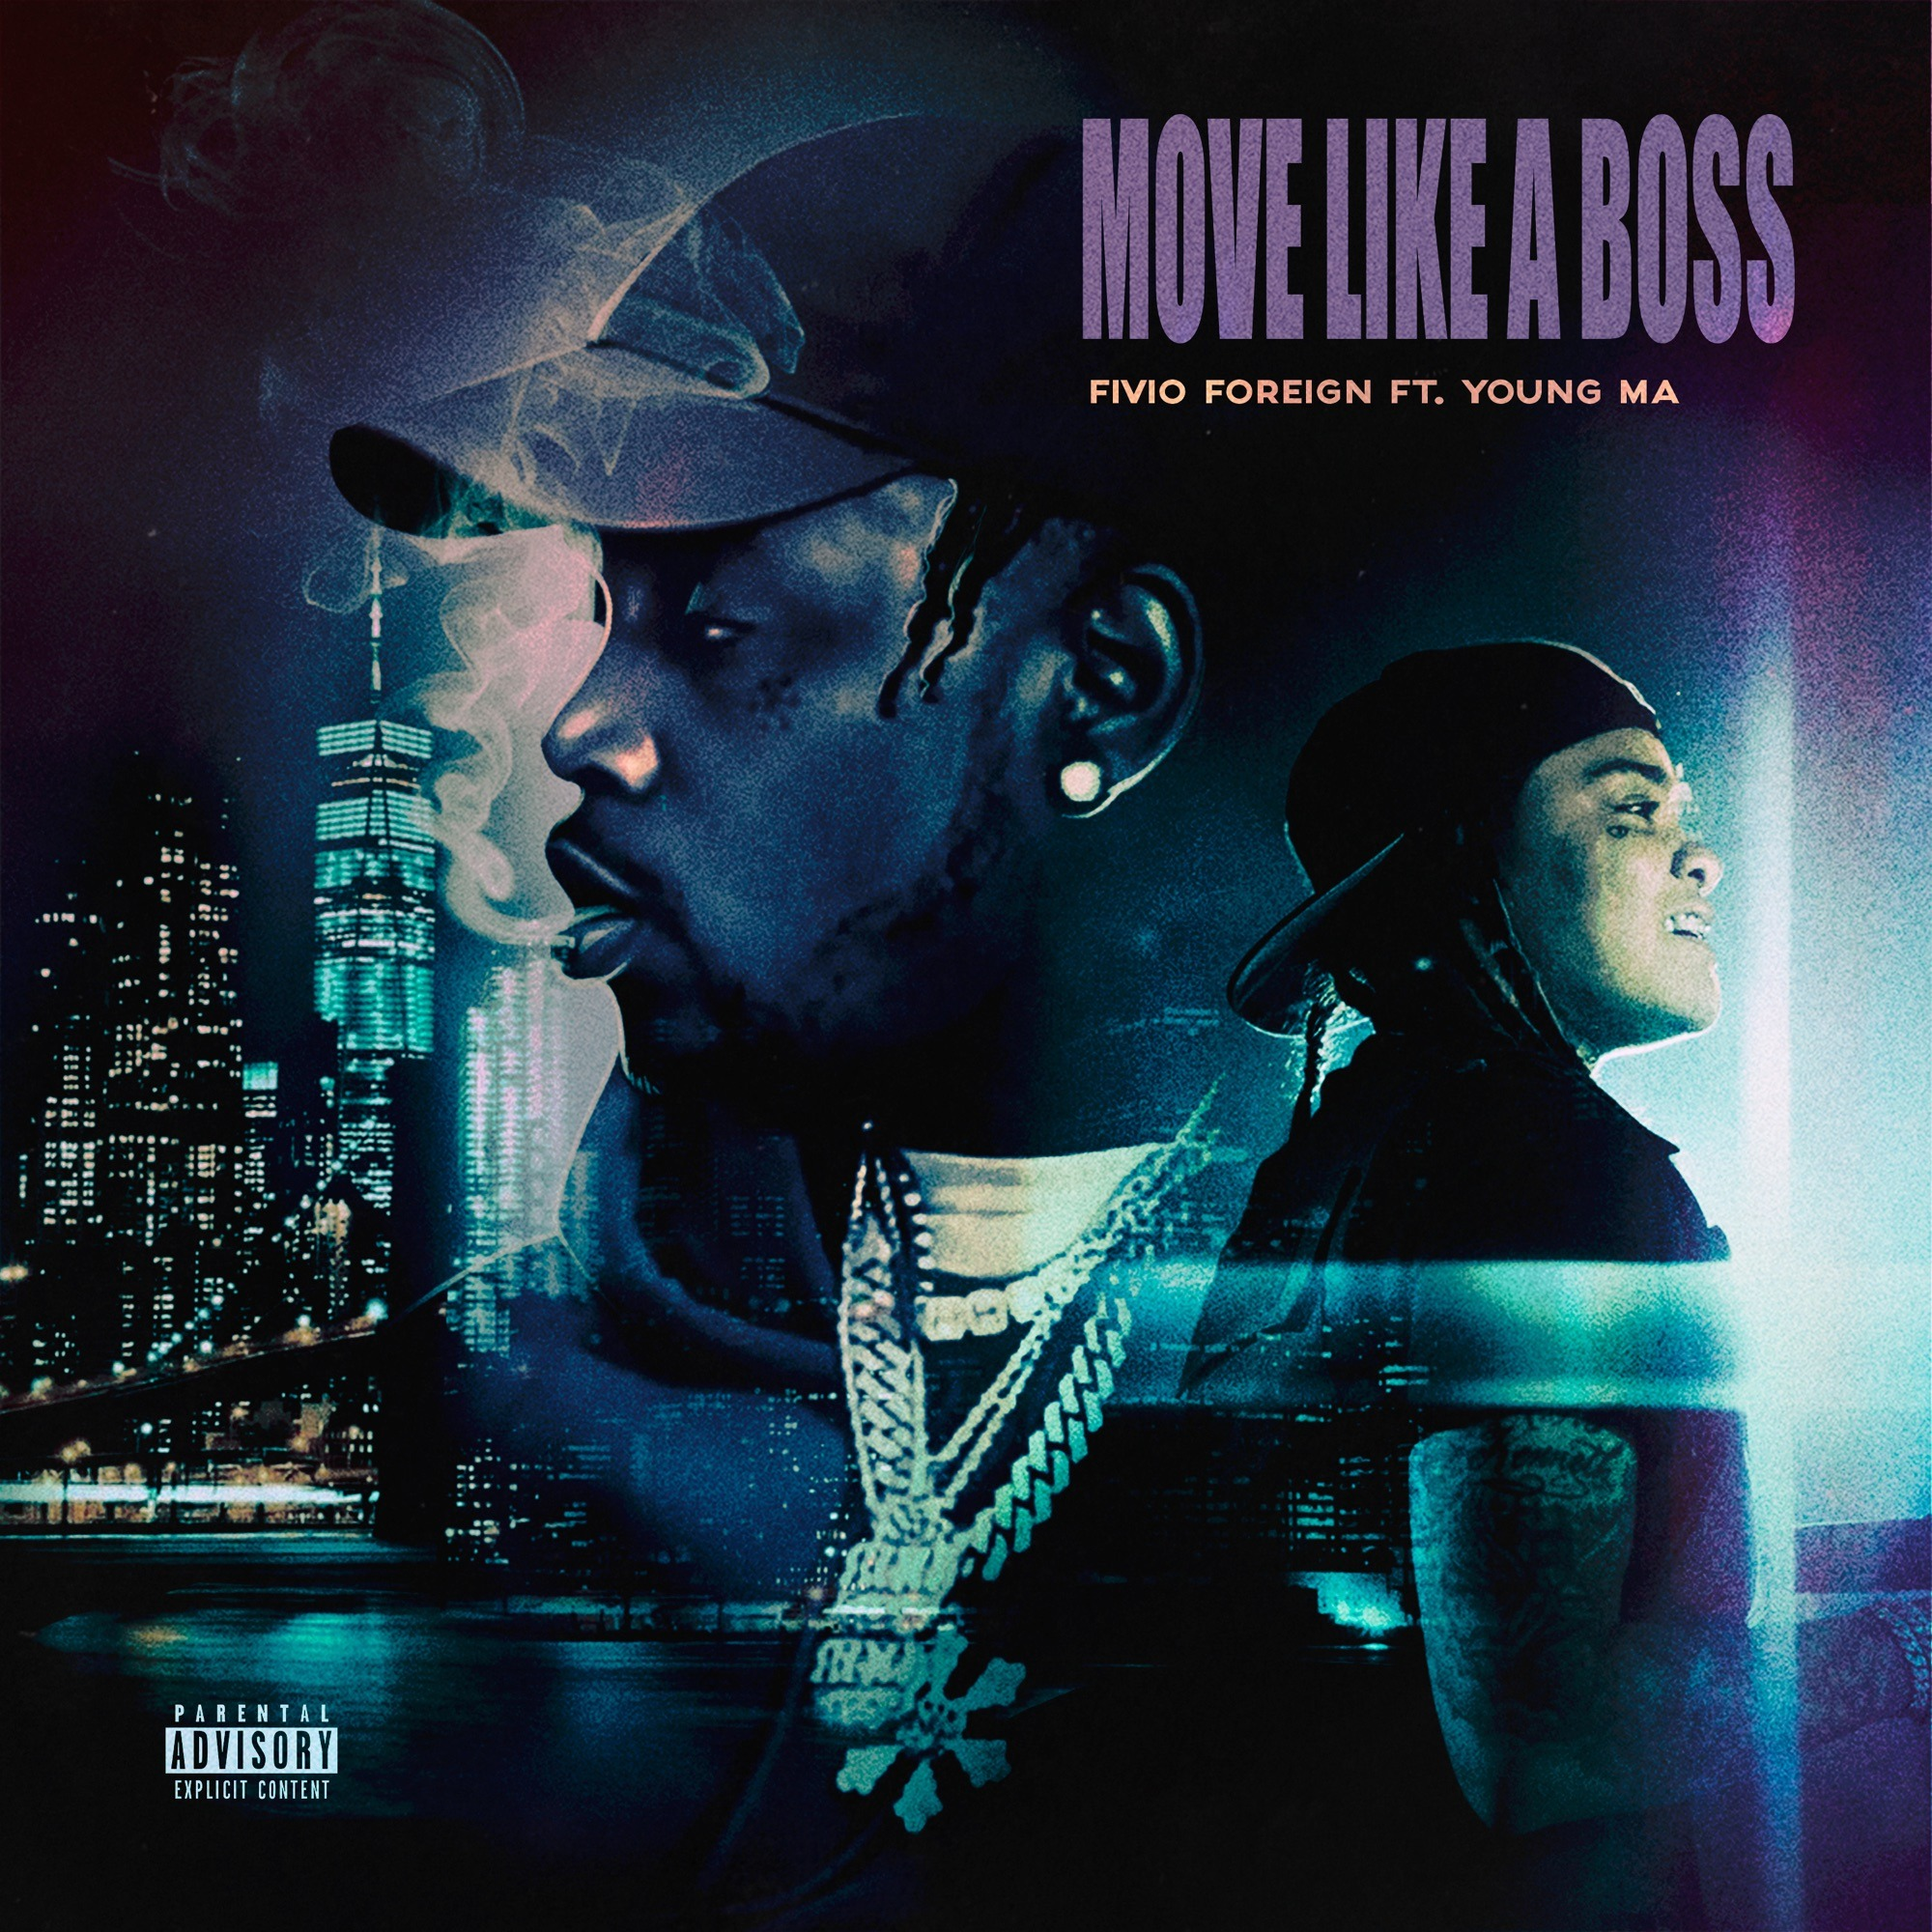 Fivio Foreign feat. Young M.A – Move Like a Boss